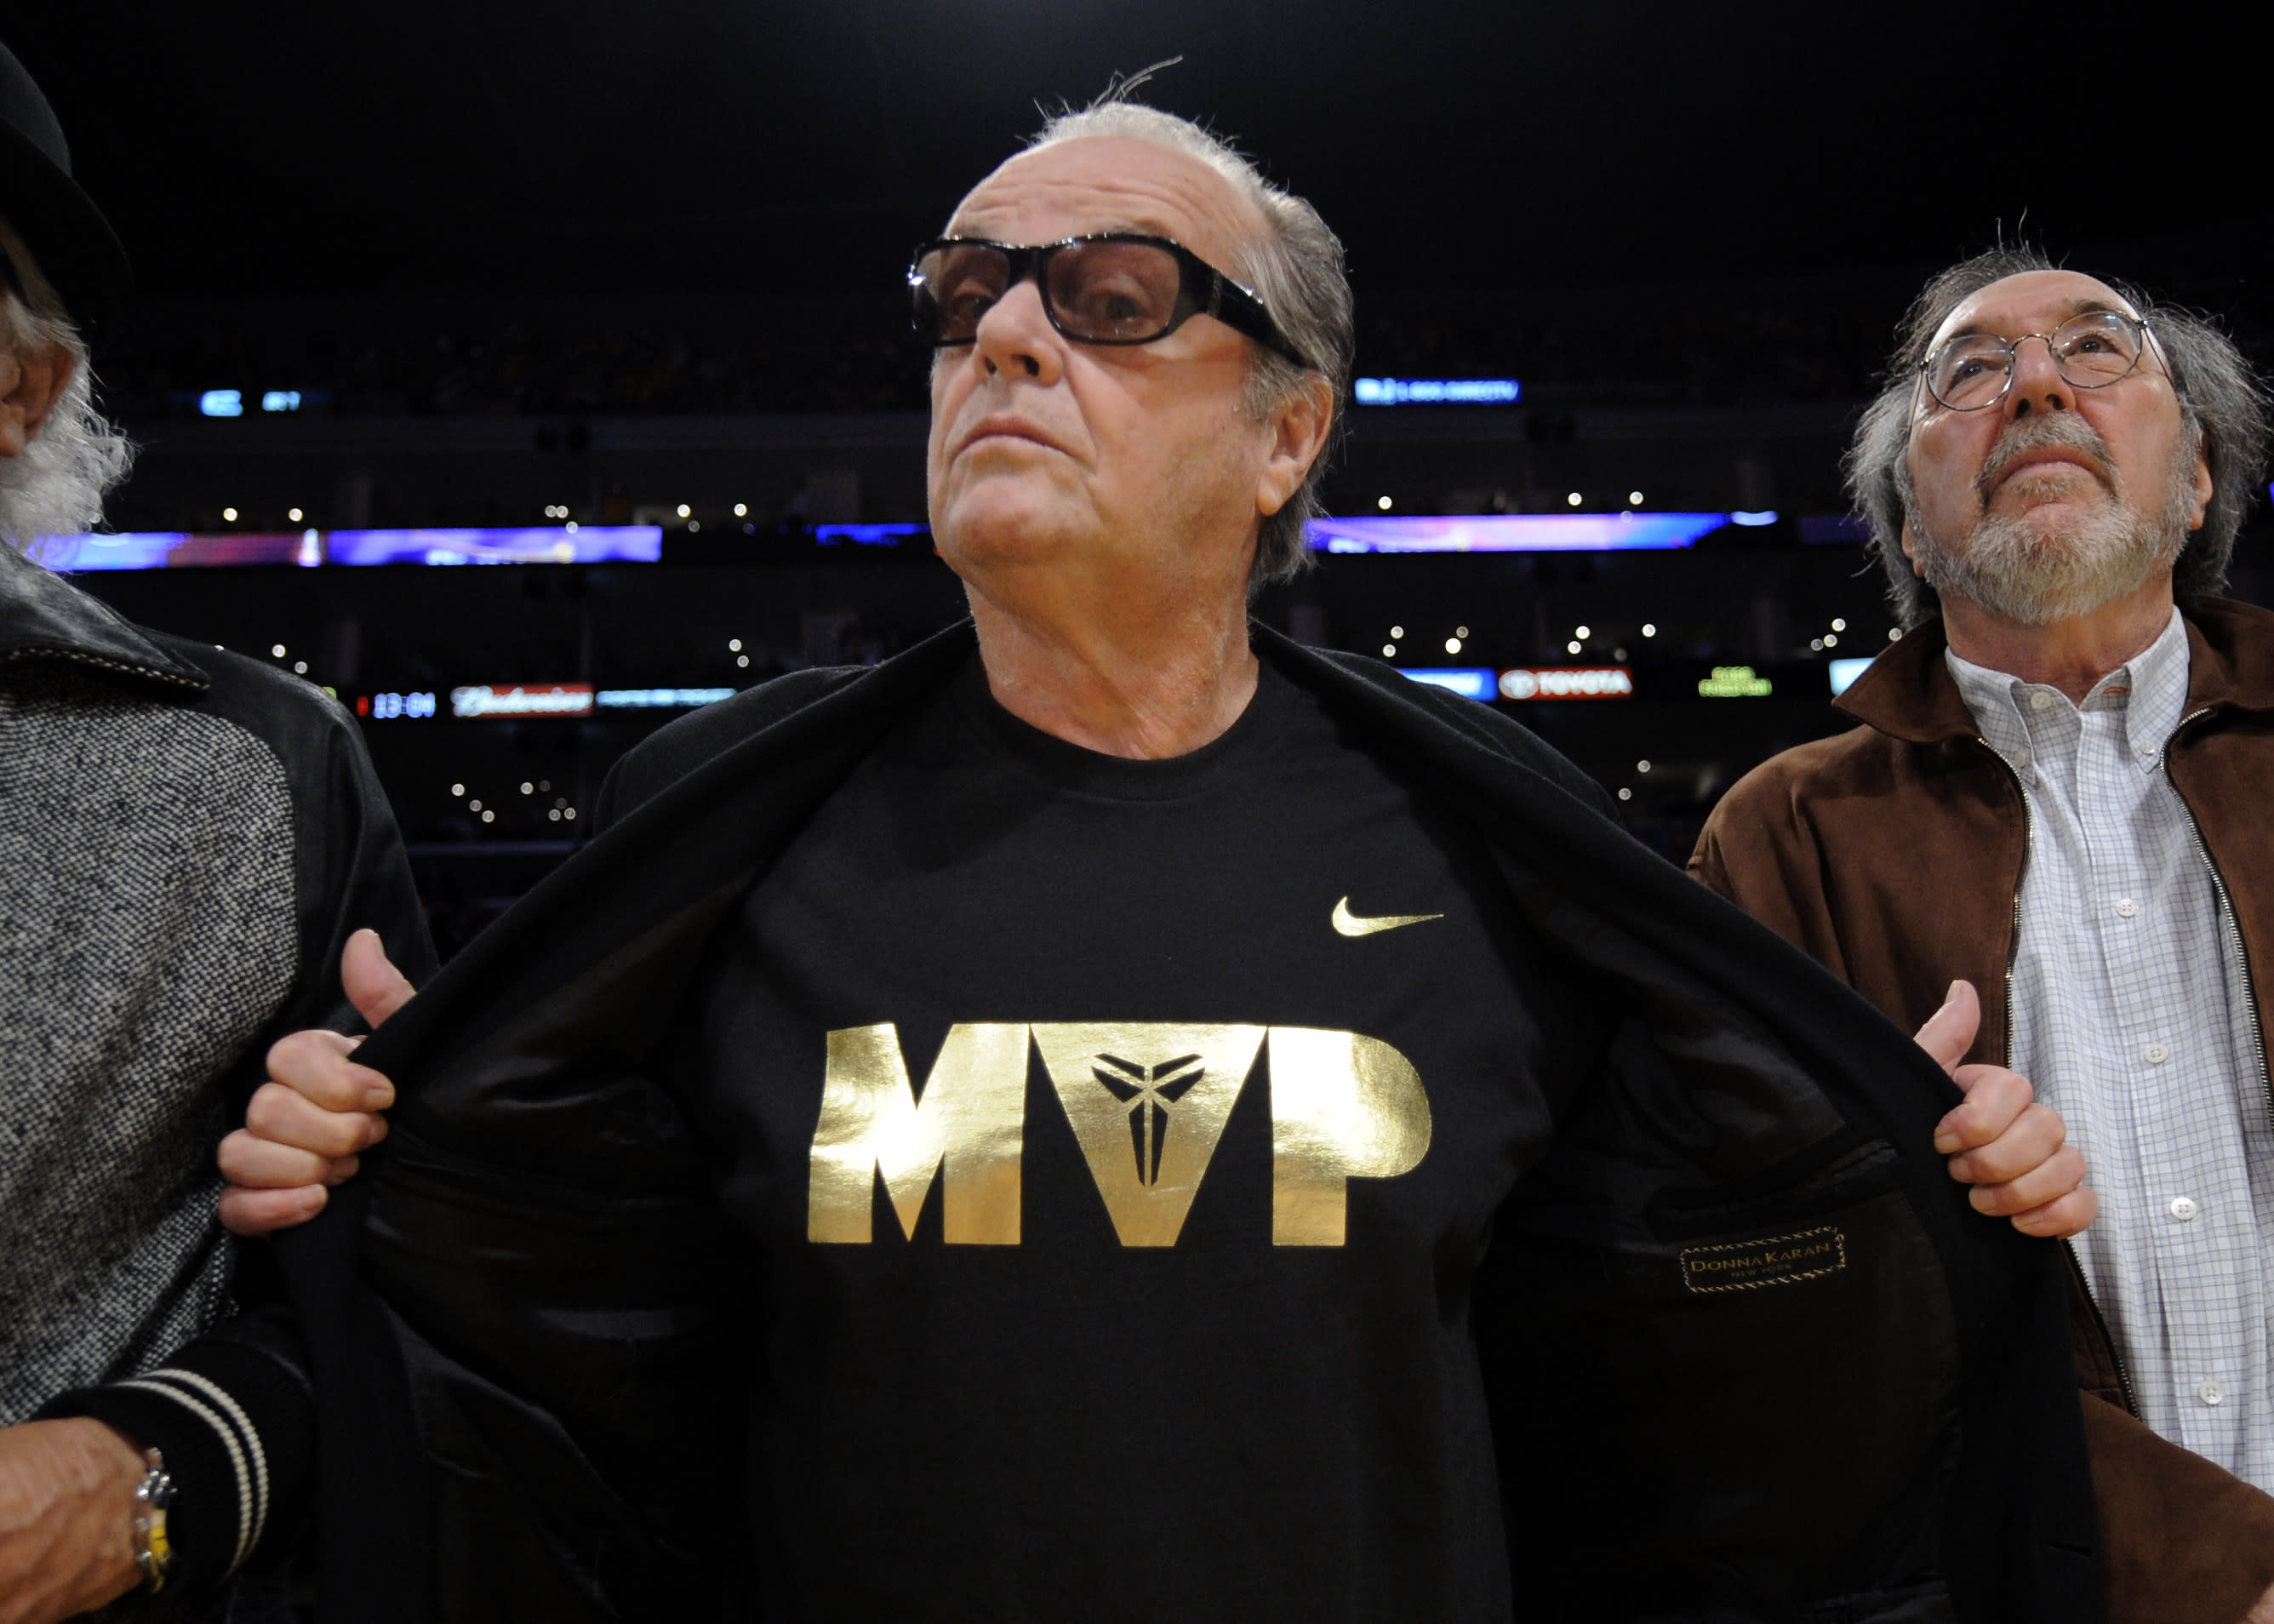 Lakers fan Jack Nicholson pays tribute to 'so talented' Kobe Bryant in rare interview